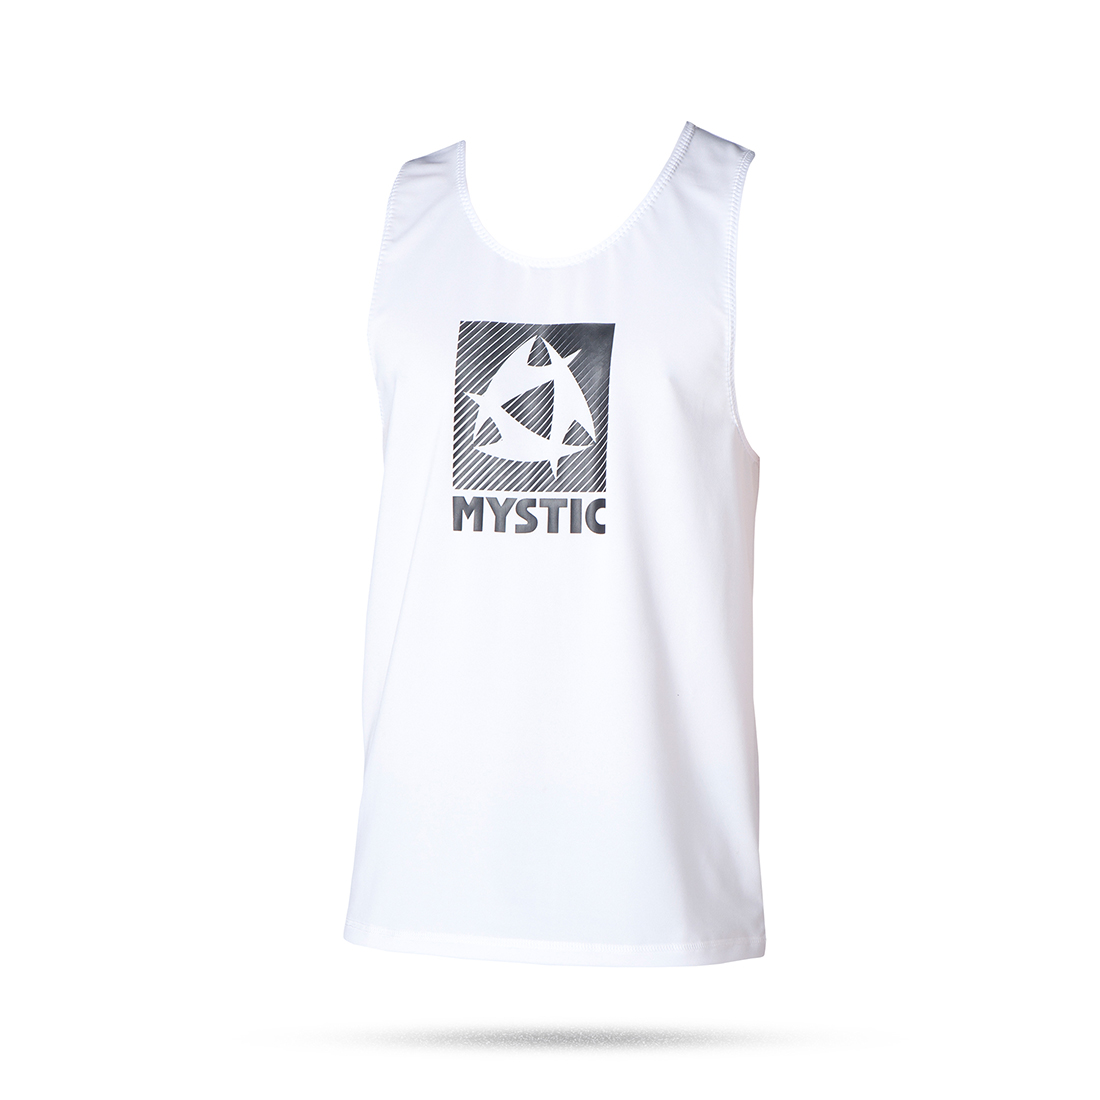 STAR QUICK DRY LOOSEFIT TANKTOP - WHITE MYSTIC 2018